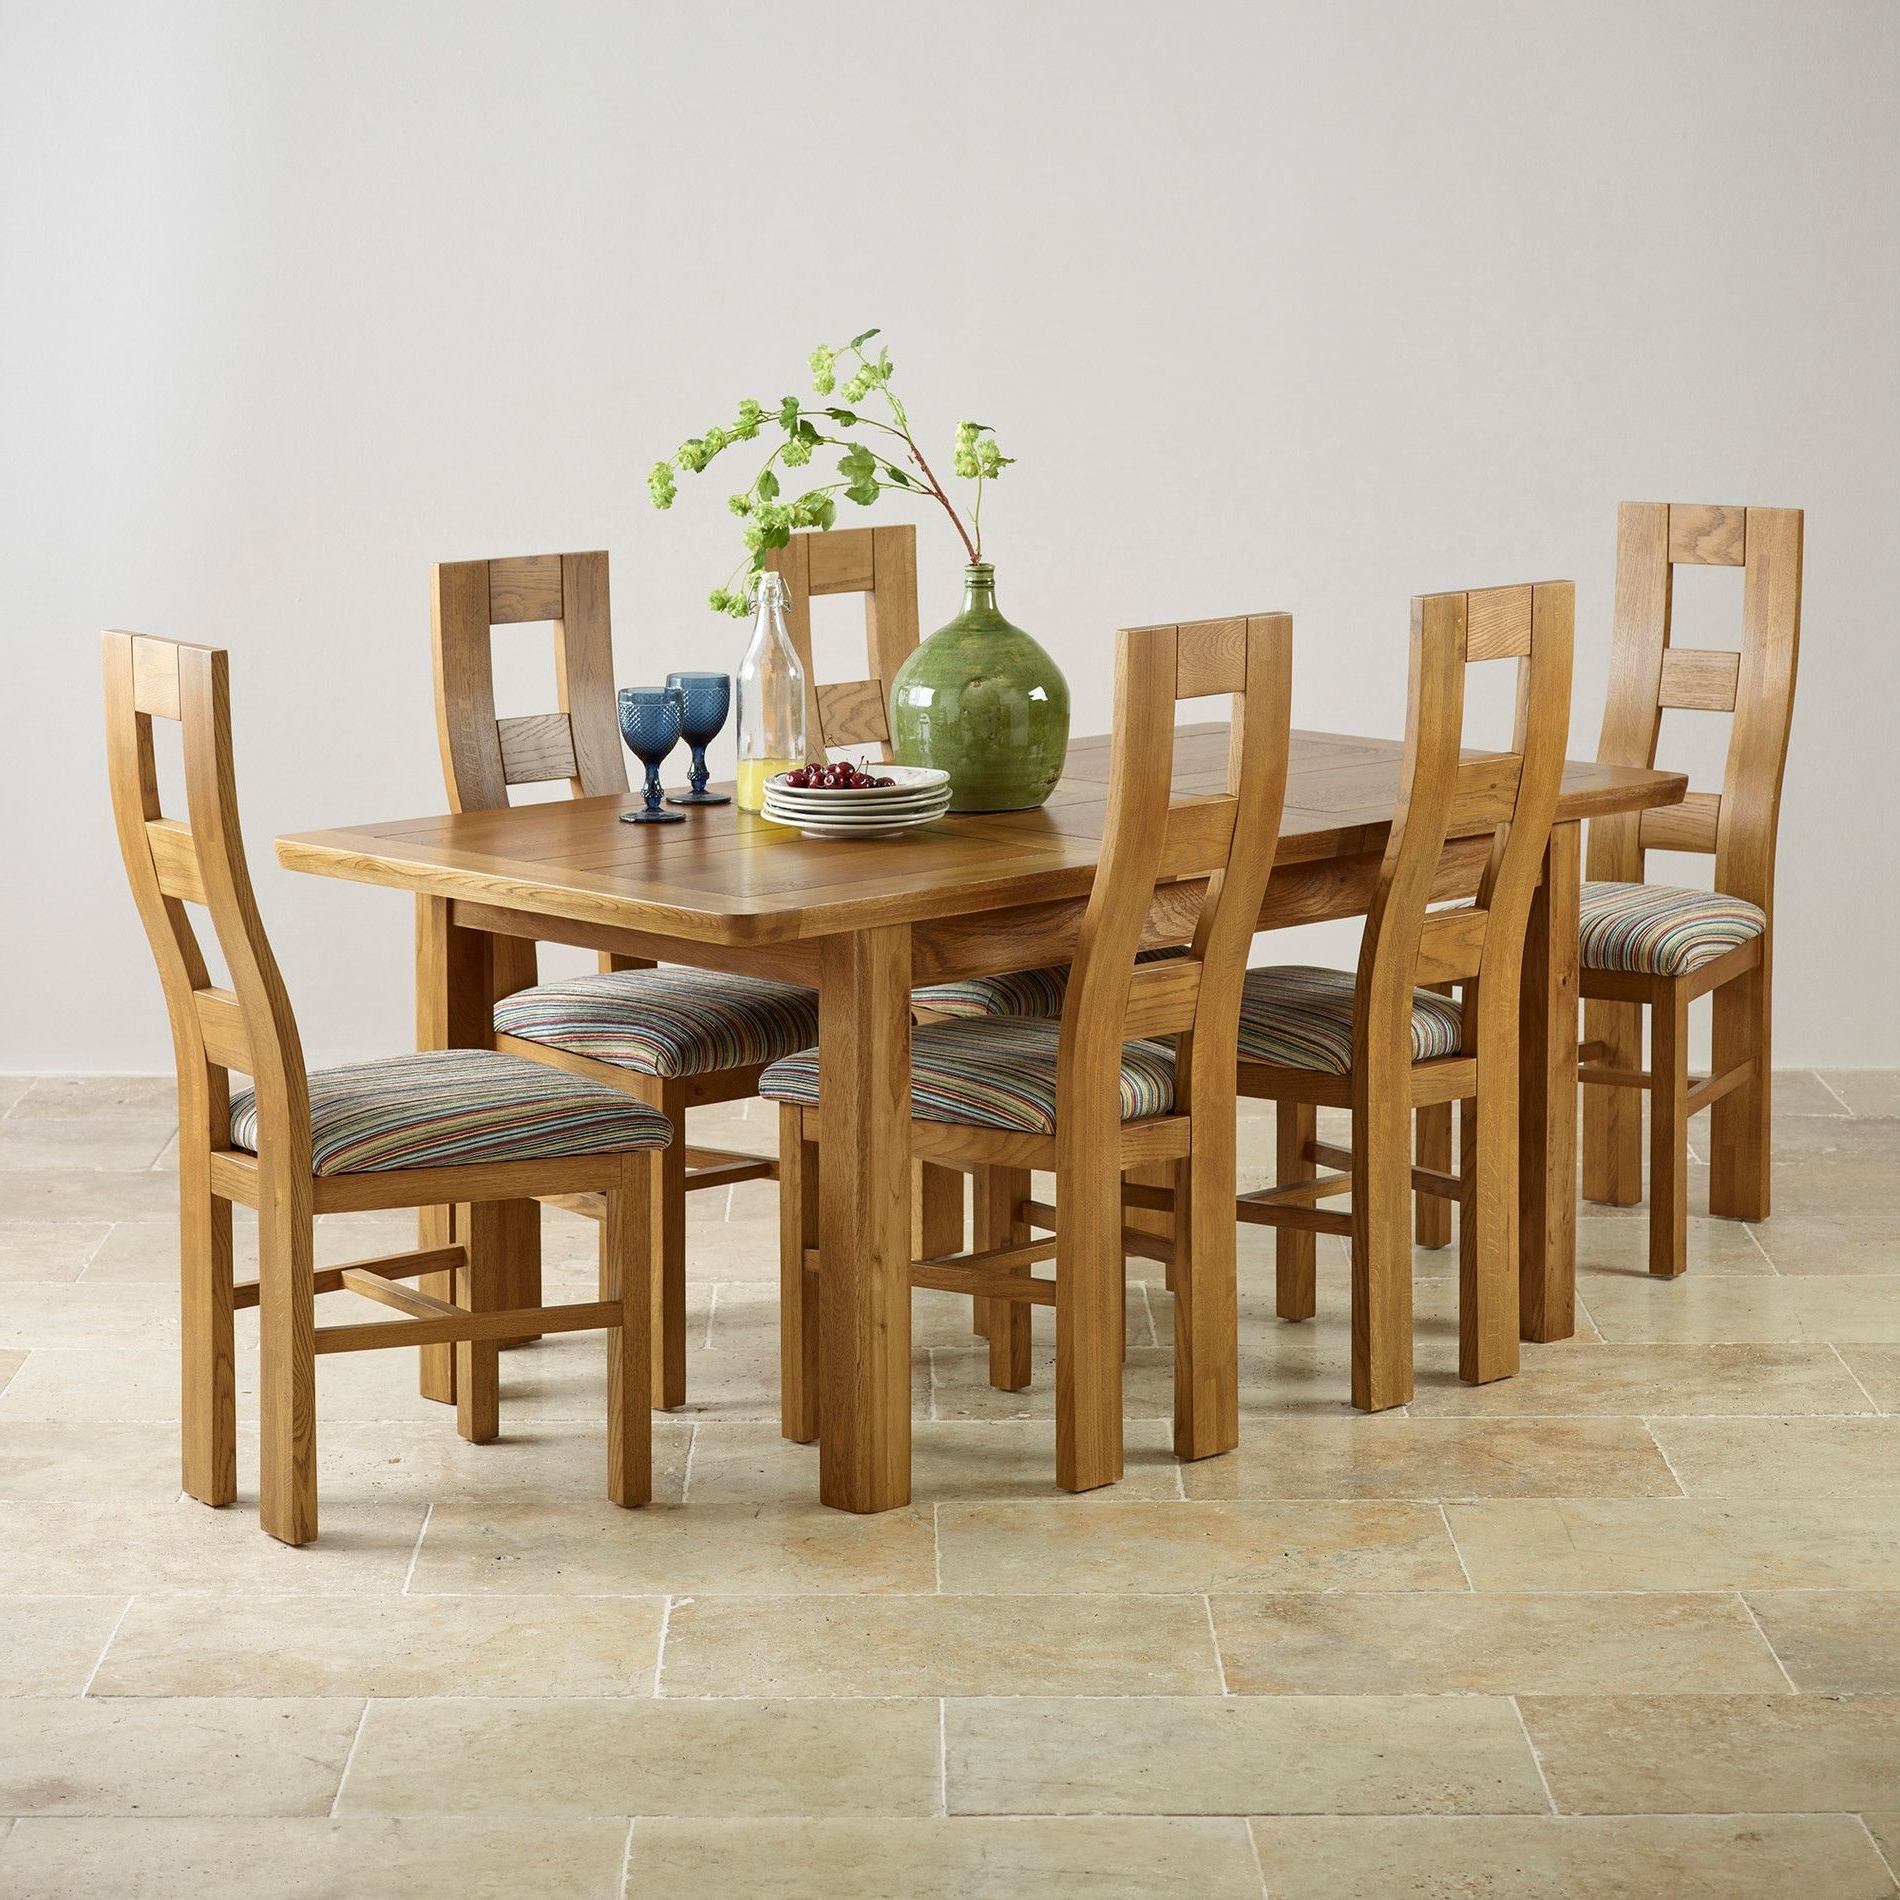 Solid Oak Extending Dining Table And 6 Chairs – Go To Regarding 2017 Oak Extending Dining Tables And 6 Chairs (View 24 of 25)